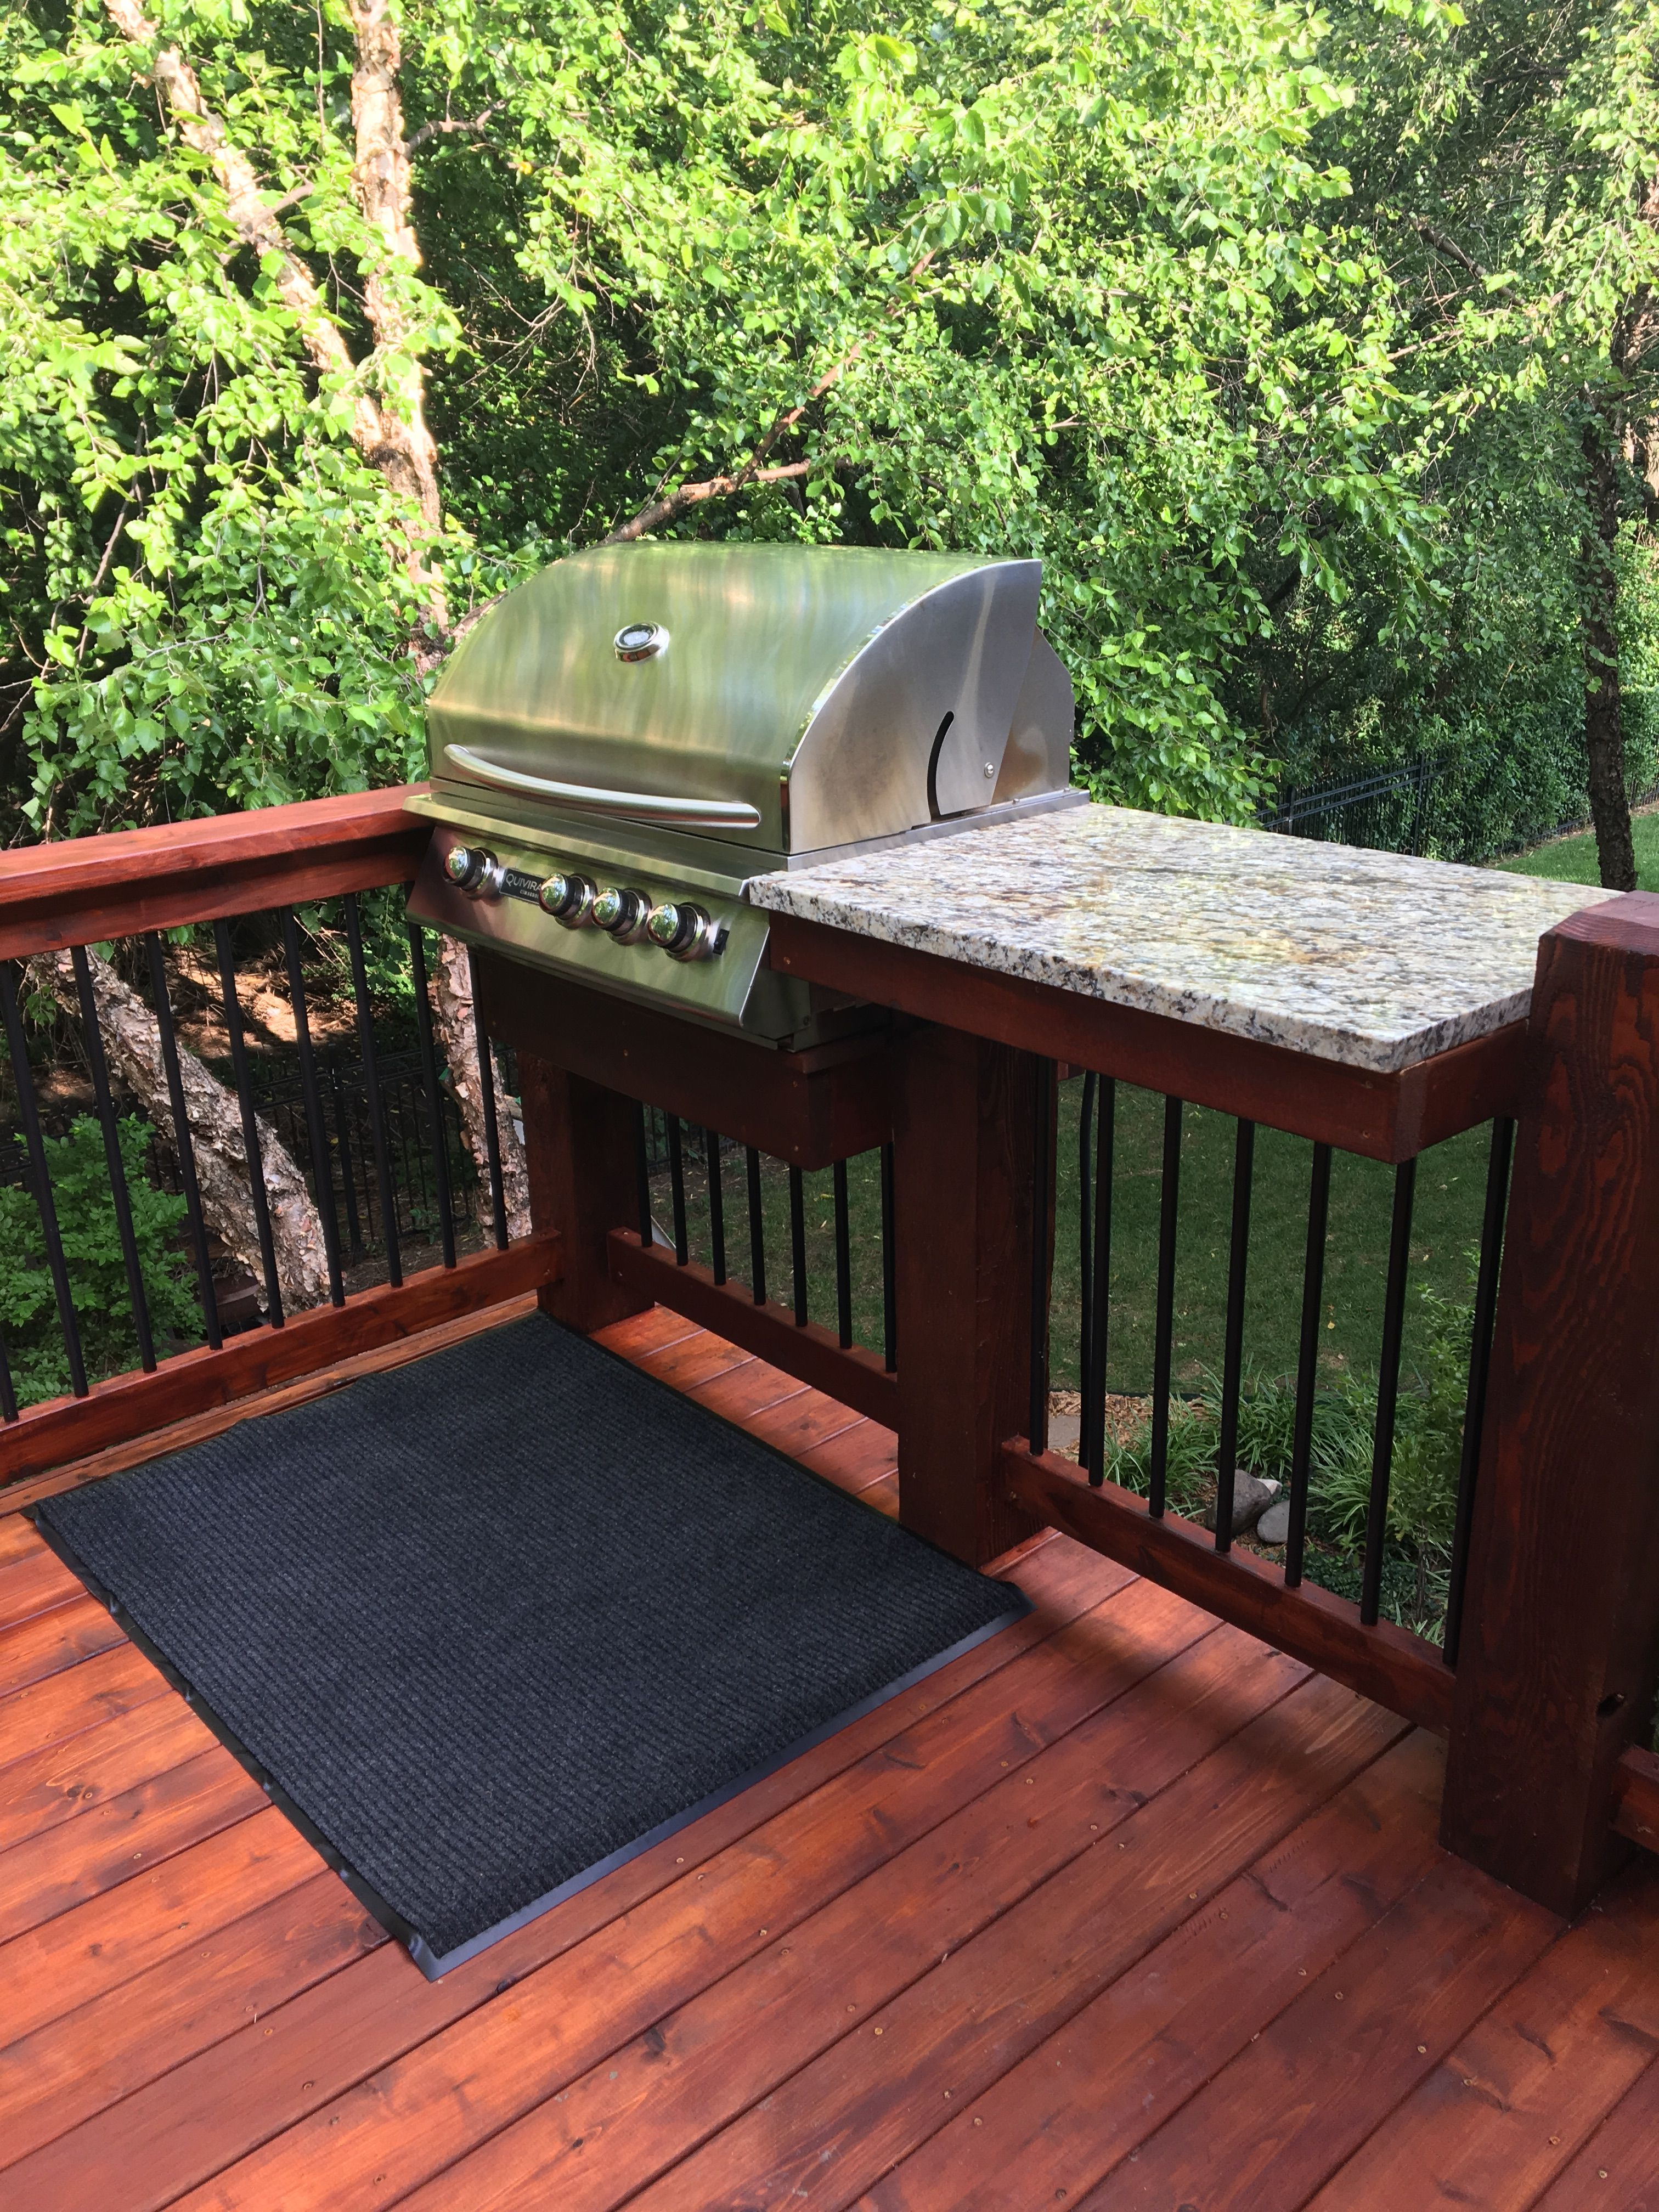 Deck Rail With Built In Grill And Granite Prep Table Deck Designs Backyard Decks Backyard Outdoor